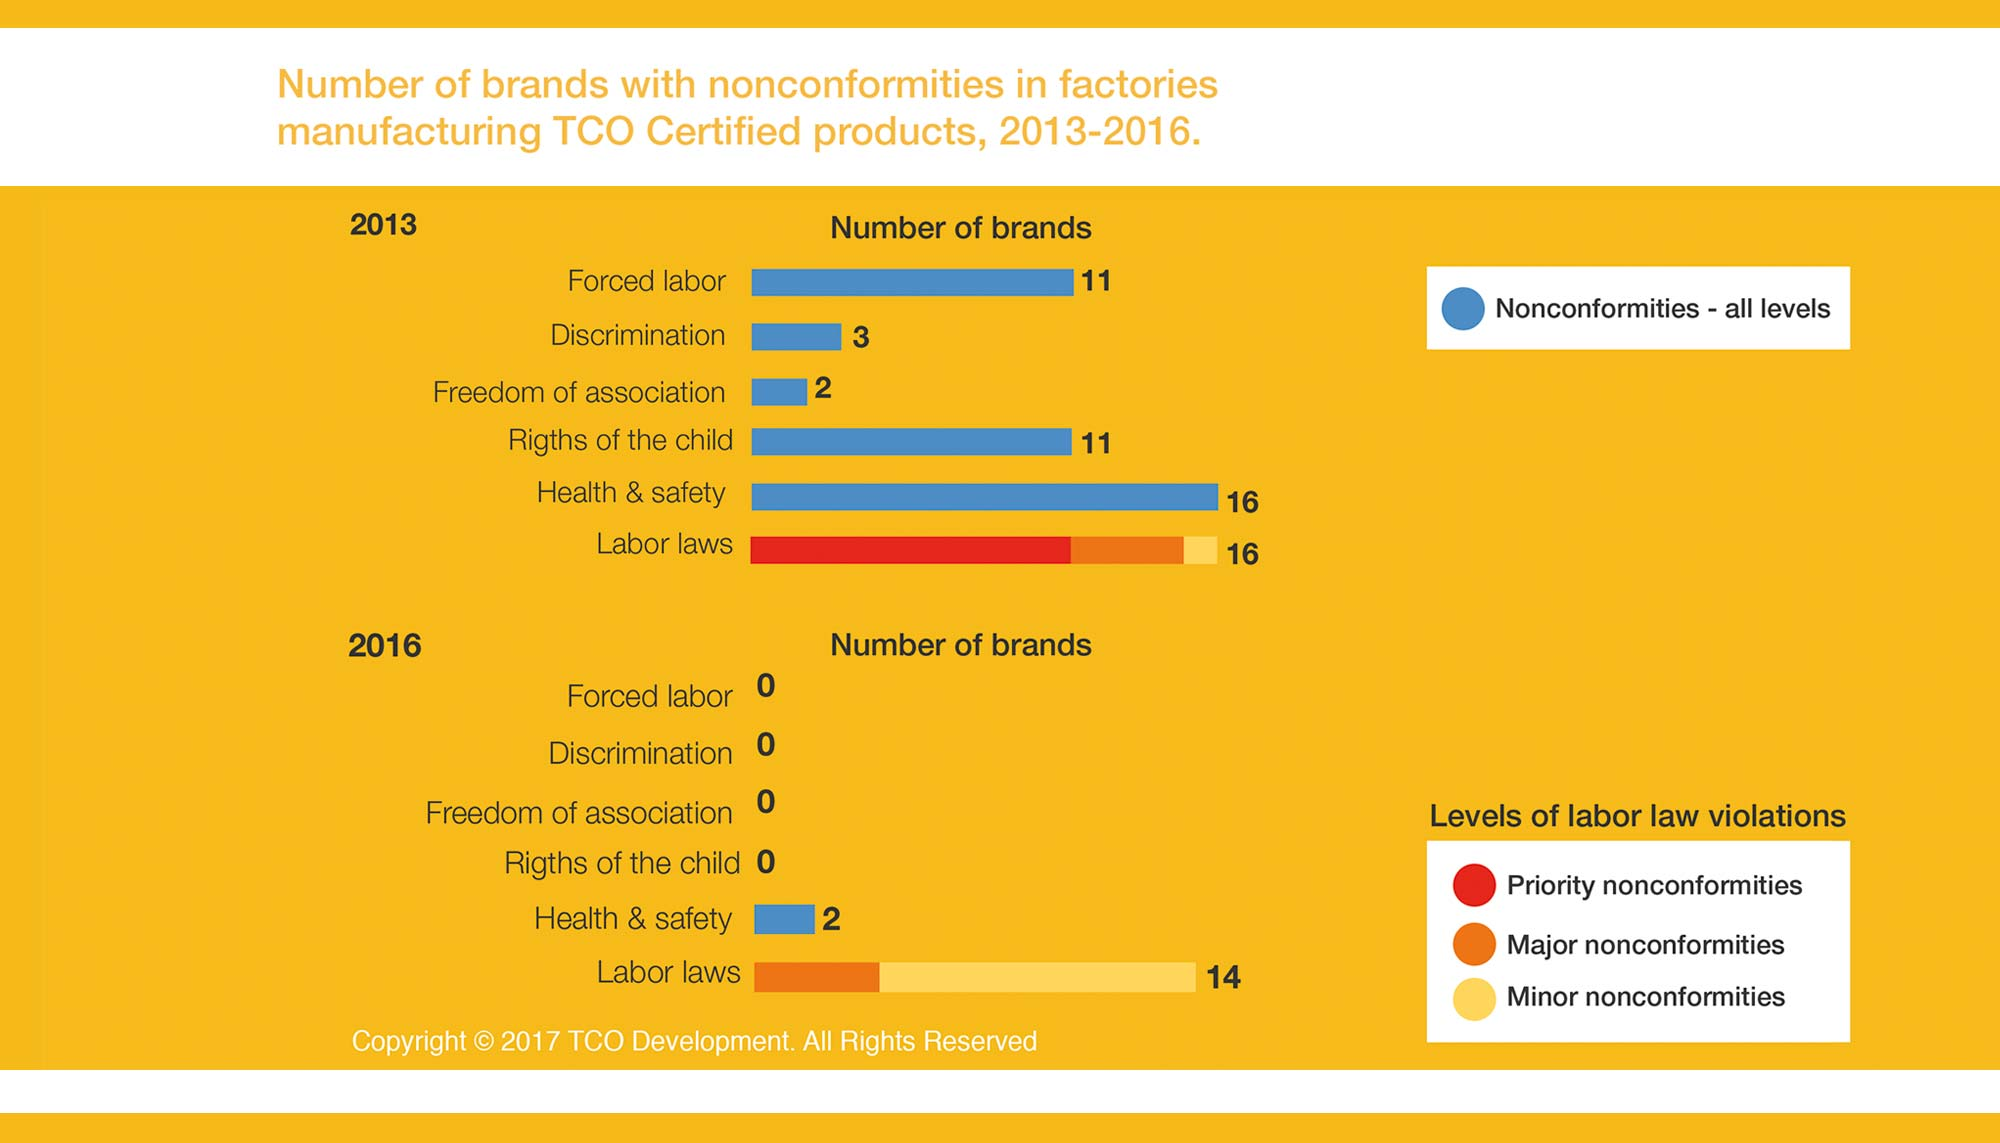 Number of brands with nonconformities